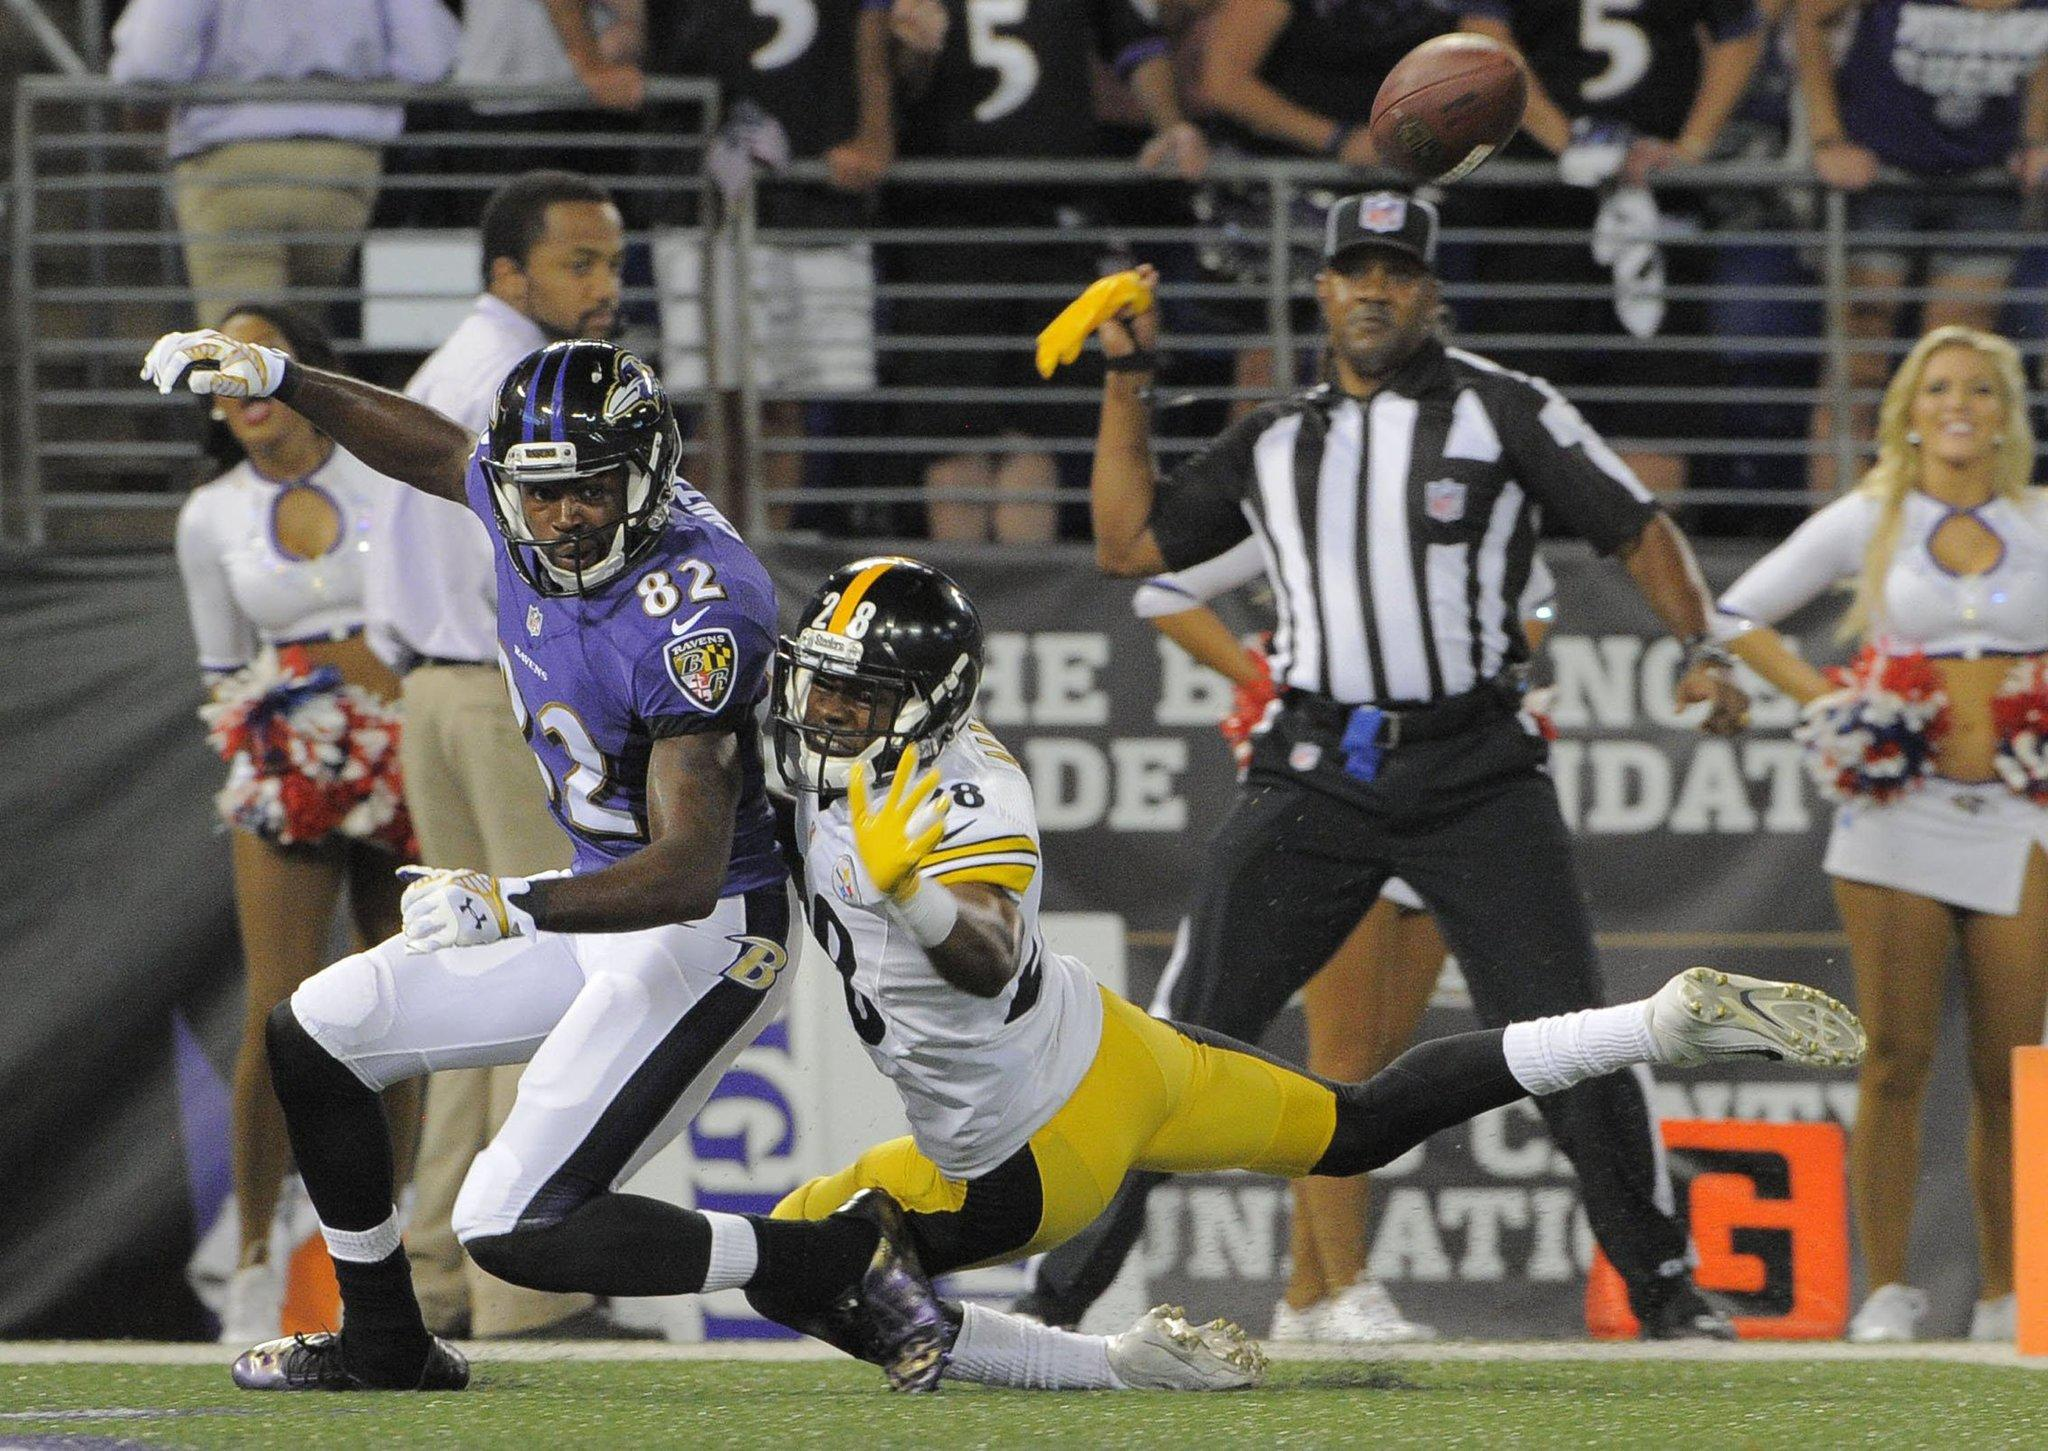 An official prepares to throw a penalty flag for pass interference as the Pittsburgh Steelers' Cortez Allen tangles with the Ravens' Torrey Smith during the first quarter.